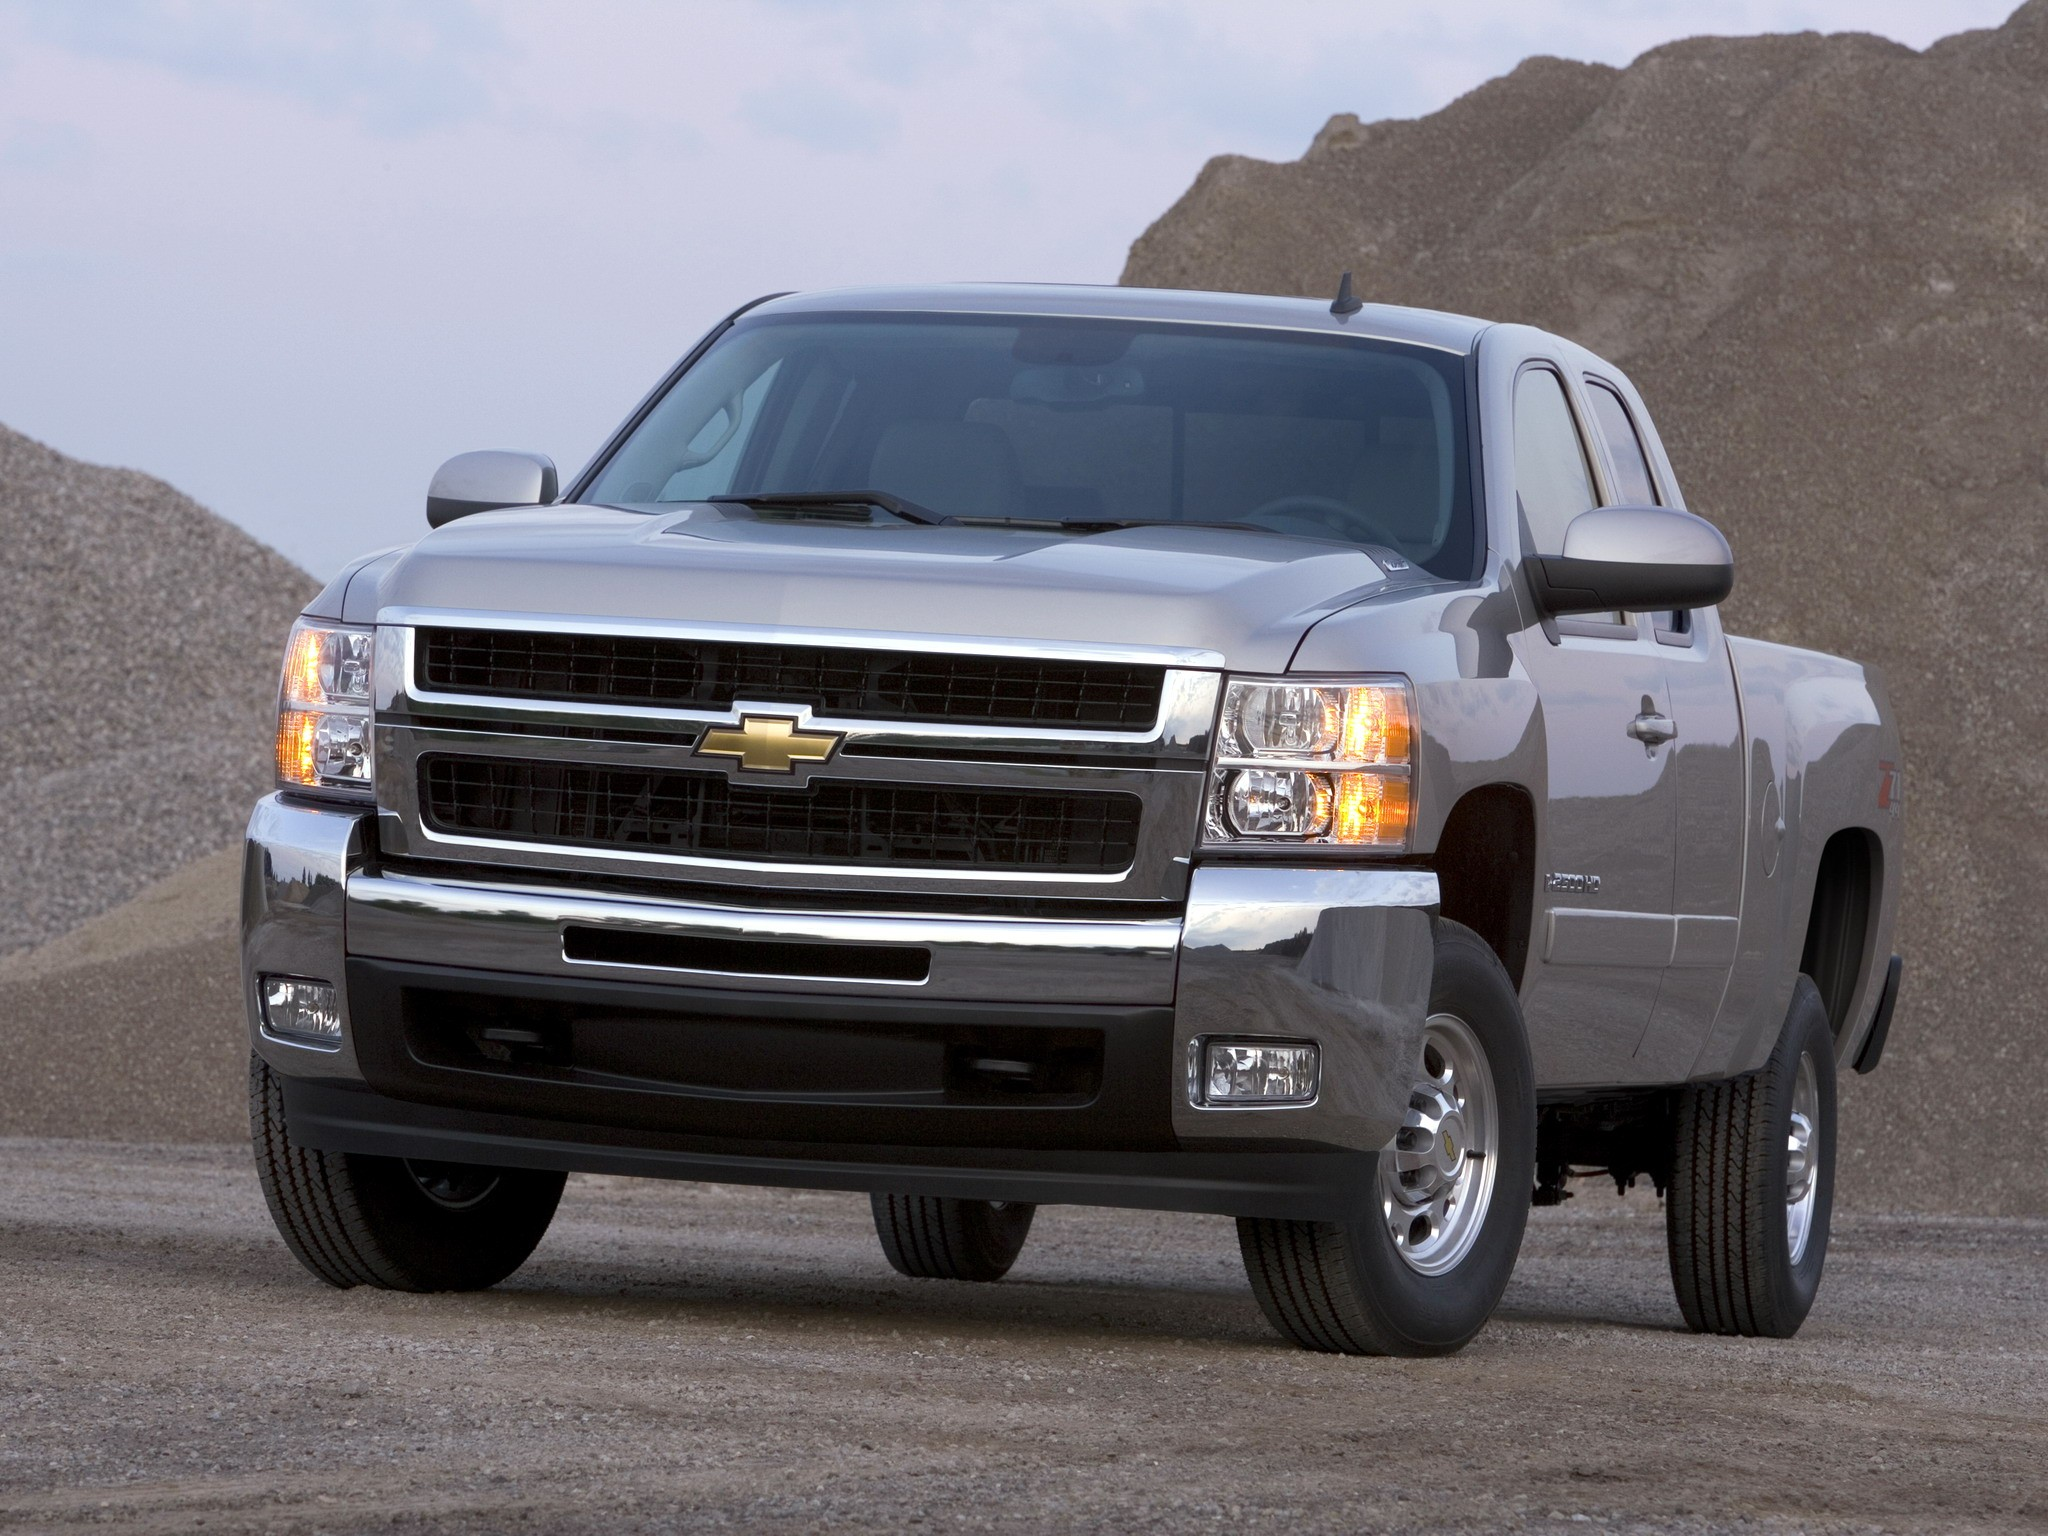 chevrolet silverado 2500hd extended cab specs 2008 2009. Black Bedroom Furniture Sets. Home Design Ideas